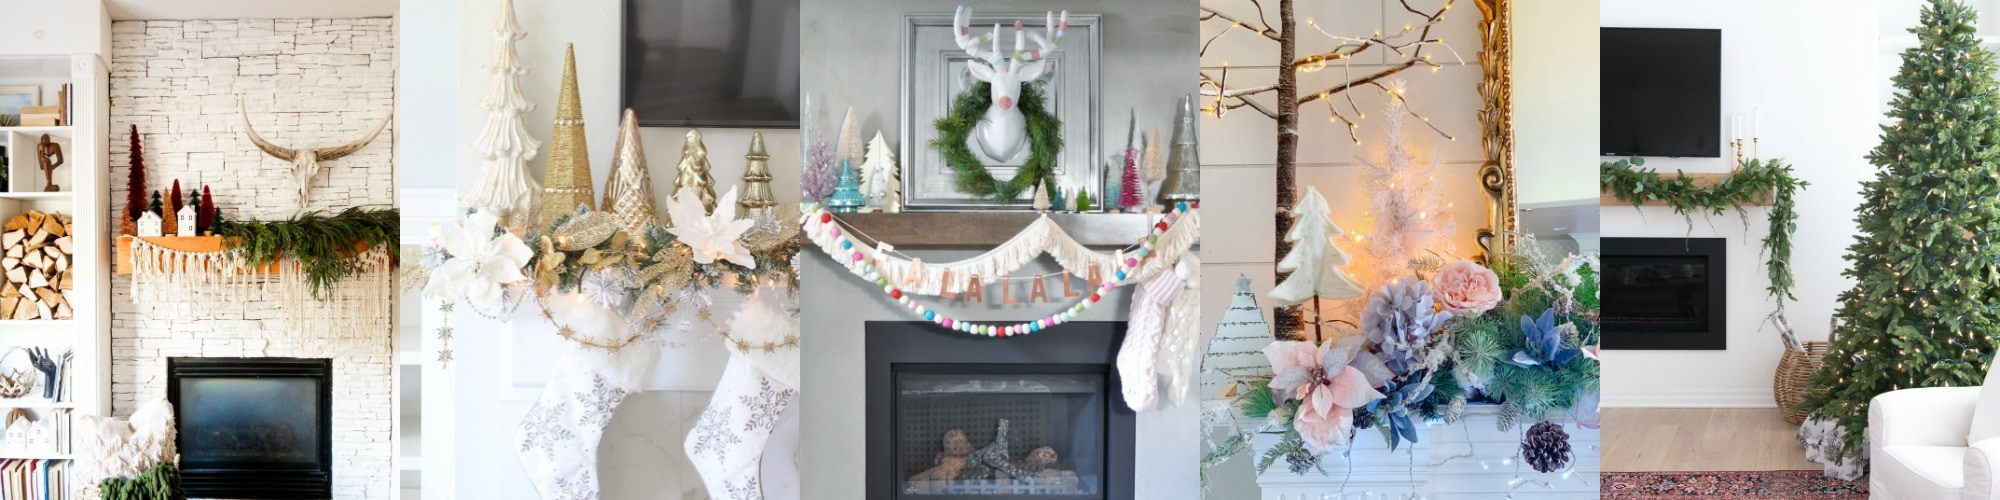 holiday mantel ideas